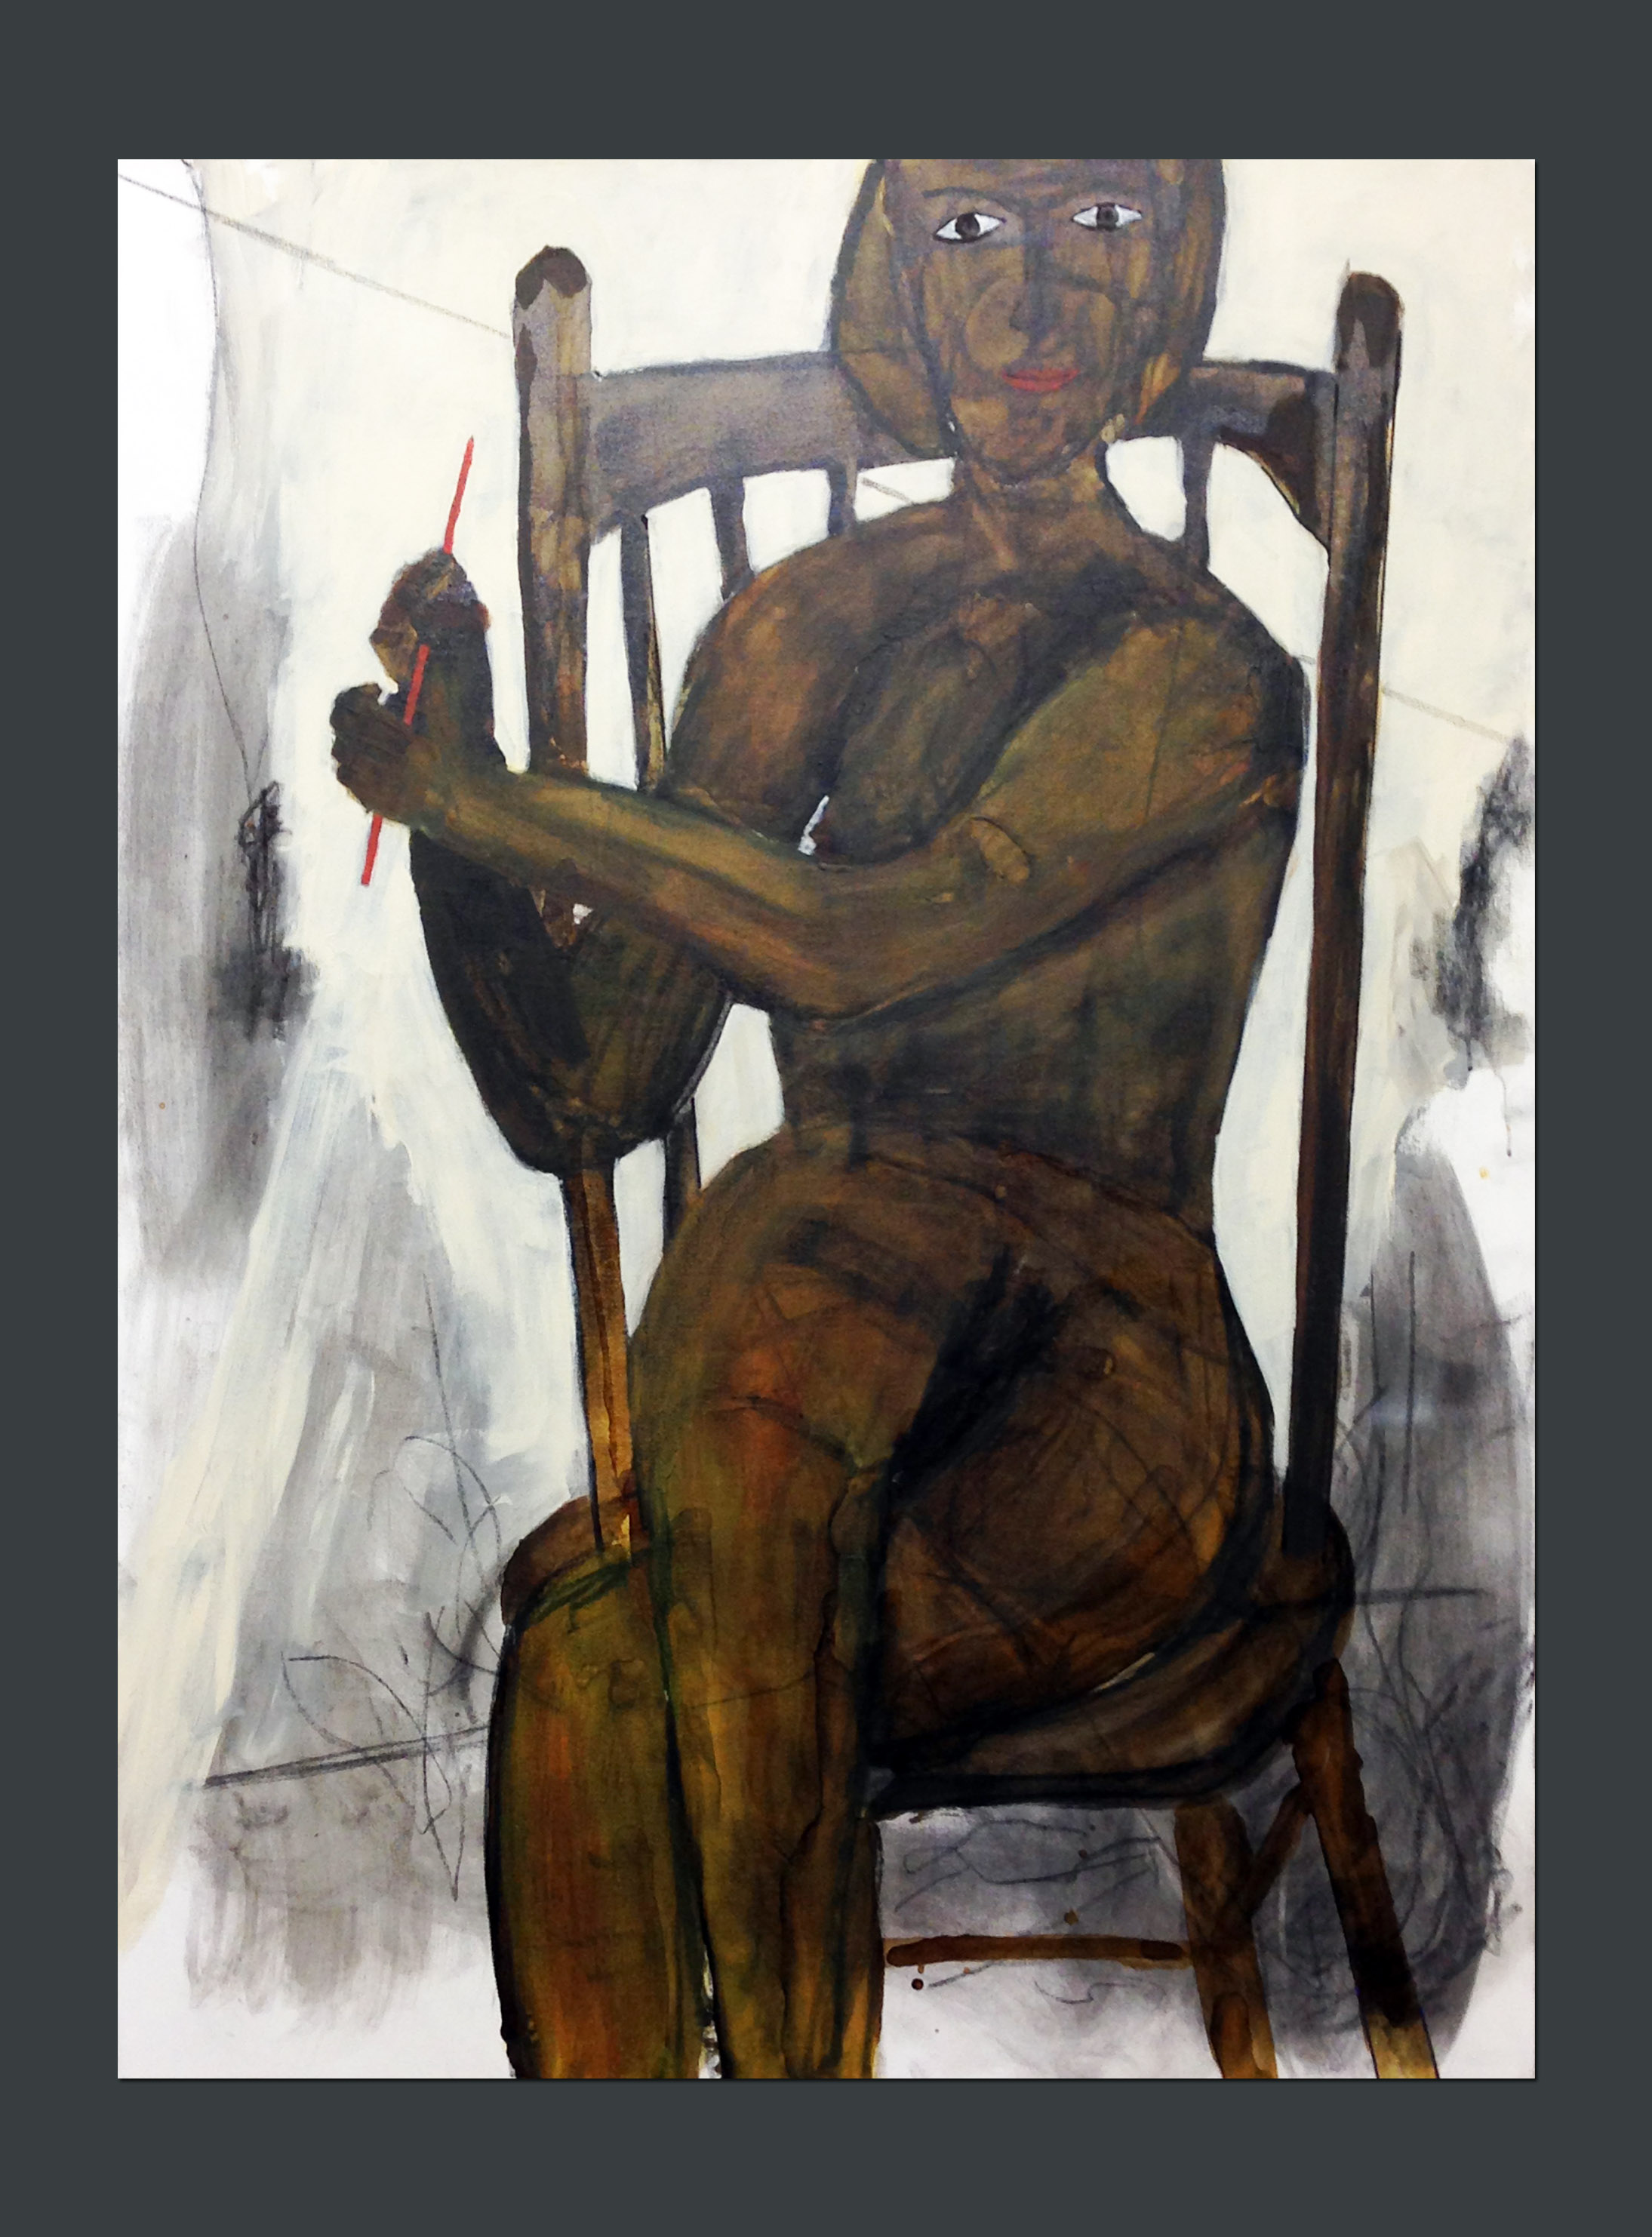 Nude performing red straw trick 48 X 36 Shellac, charcoal, acrylic on canvas